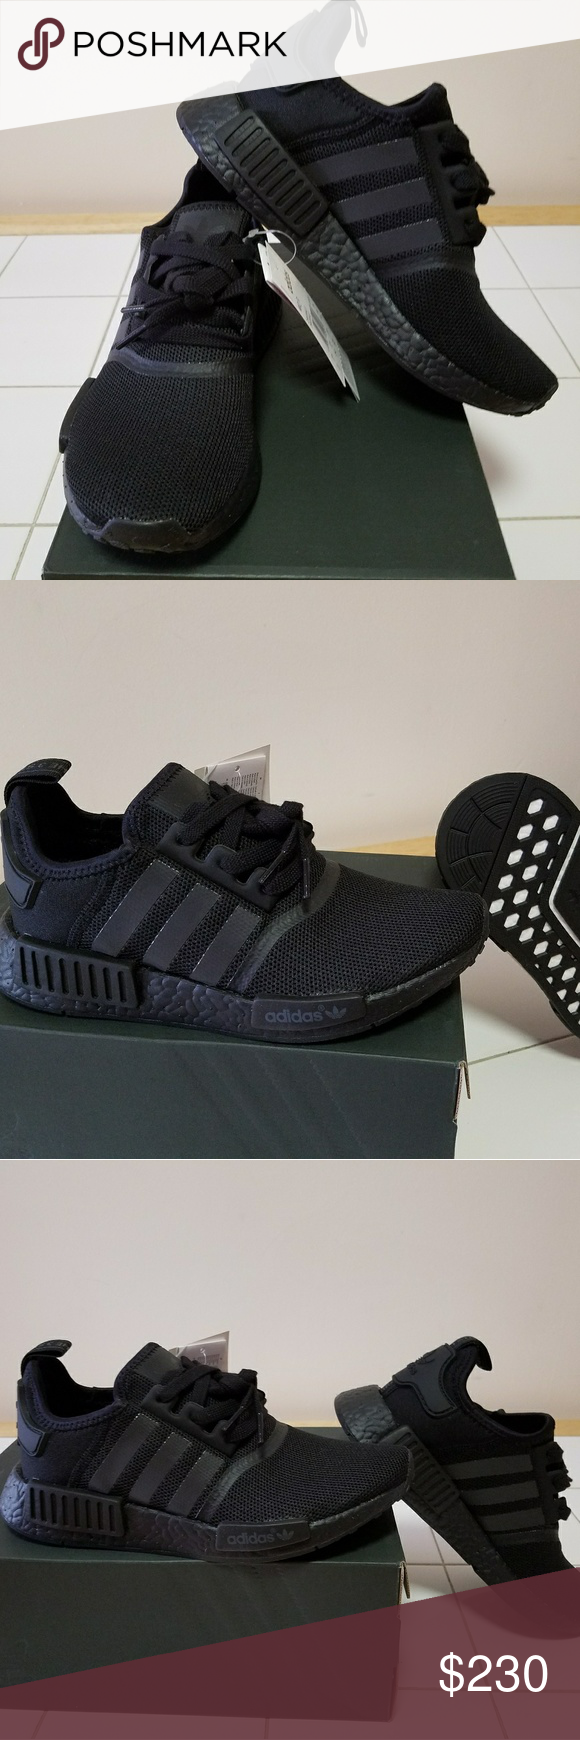 nmd pk adidas the brand with the 3